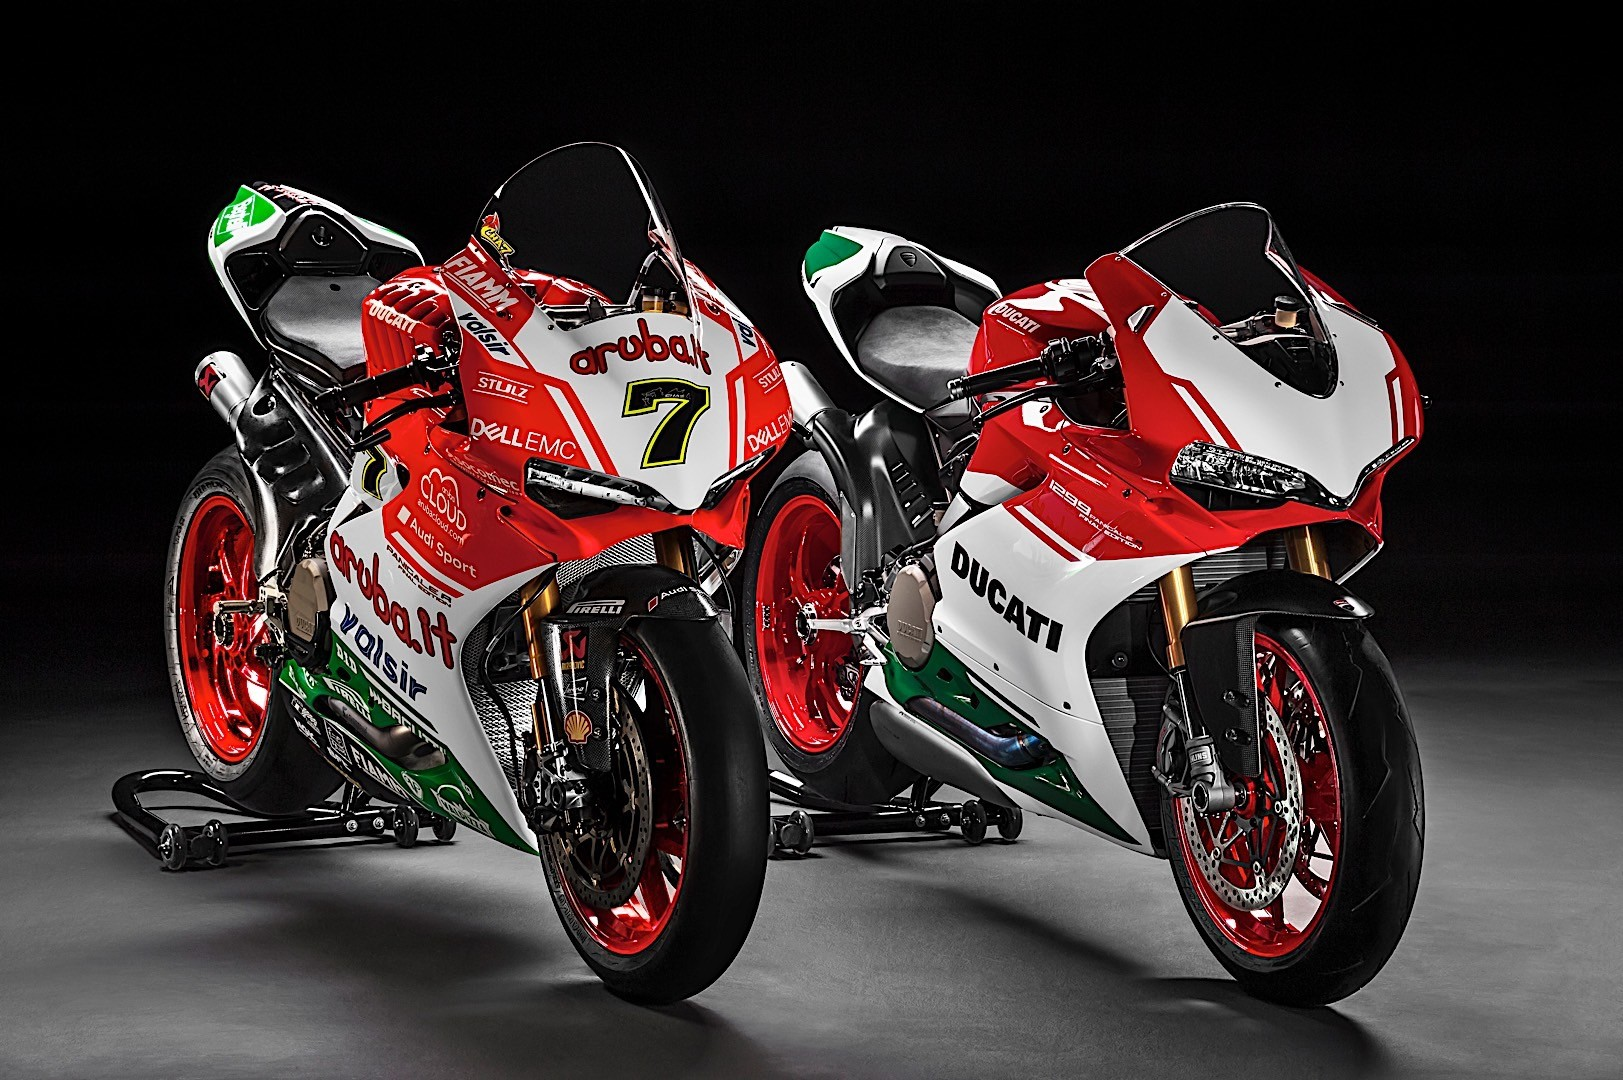 Ducati 1299 Panigale R Final Edition Unveiled: a 209 HP Beauty and Beast - autoevolution